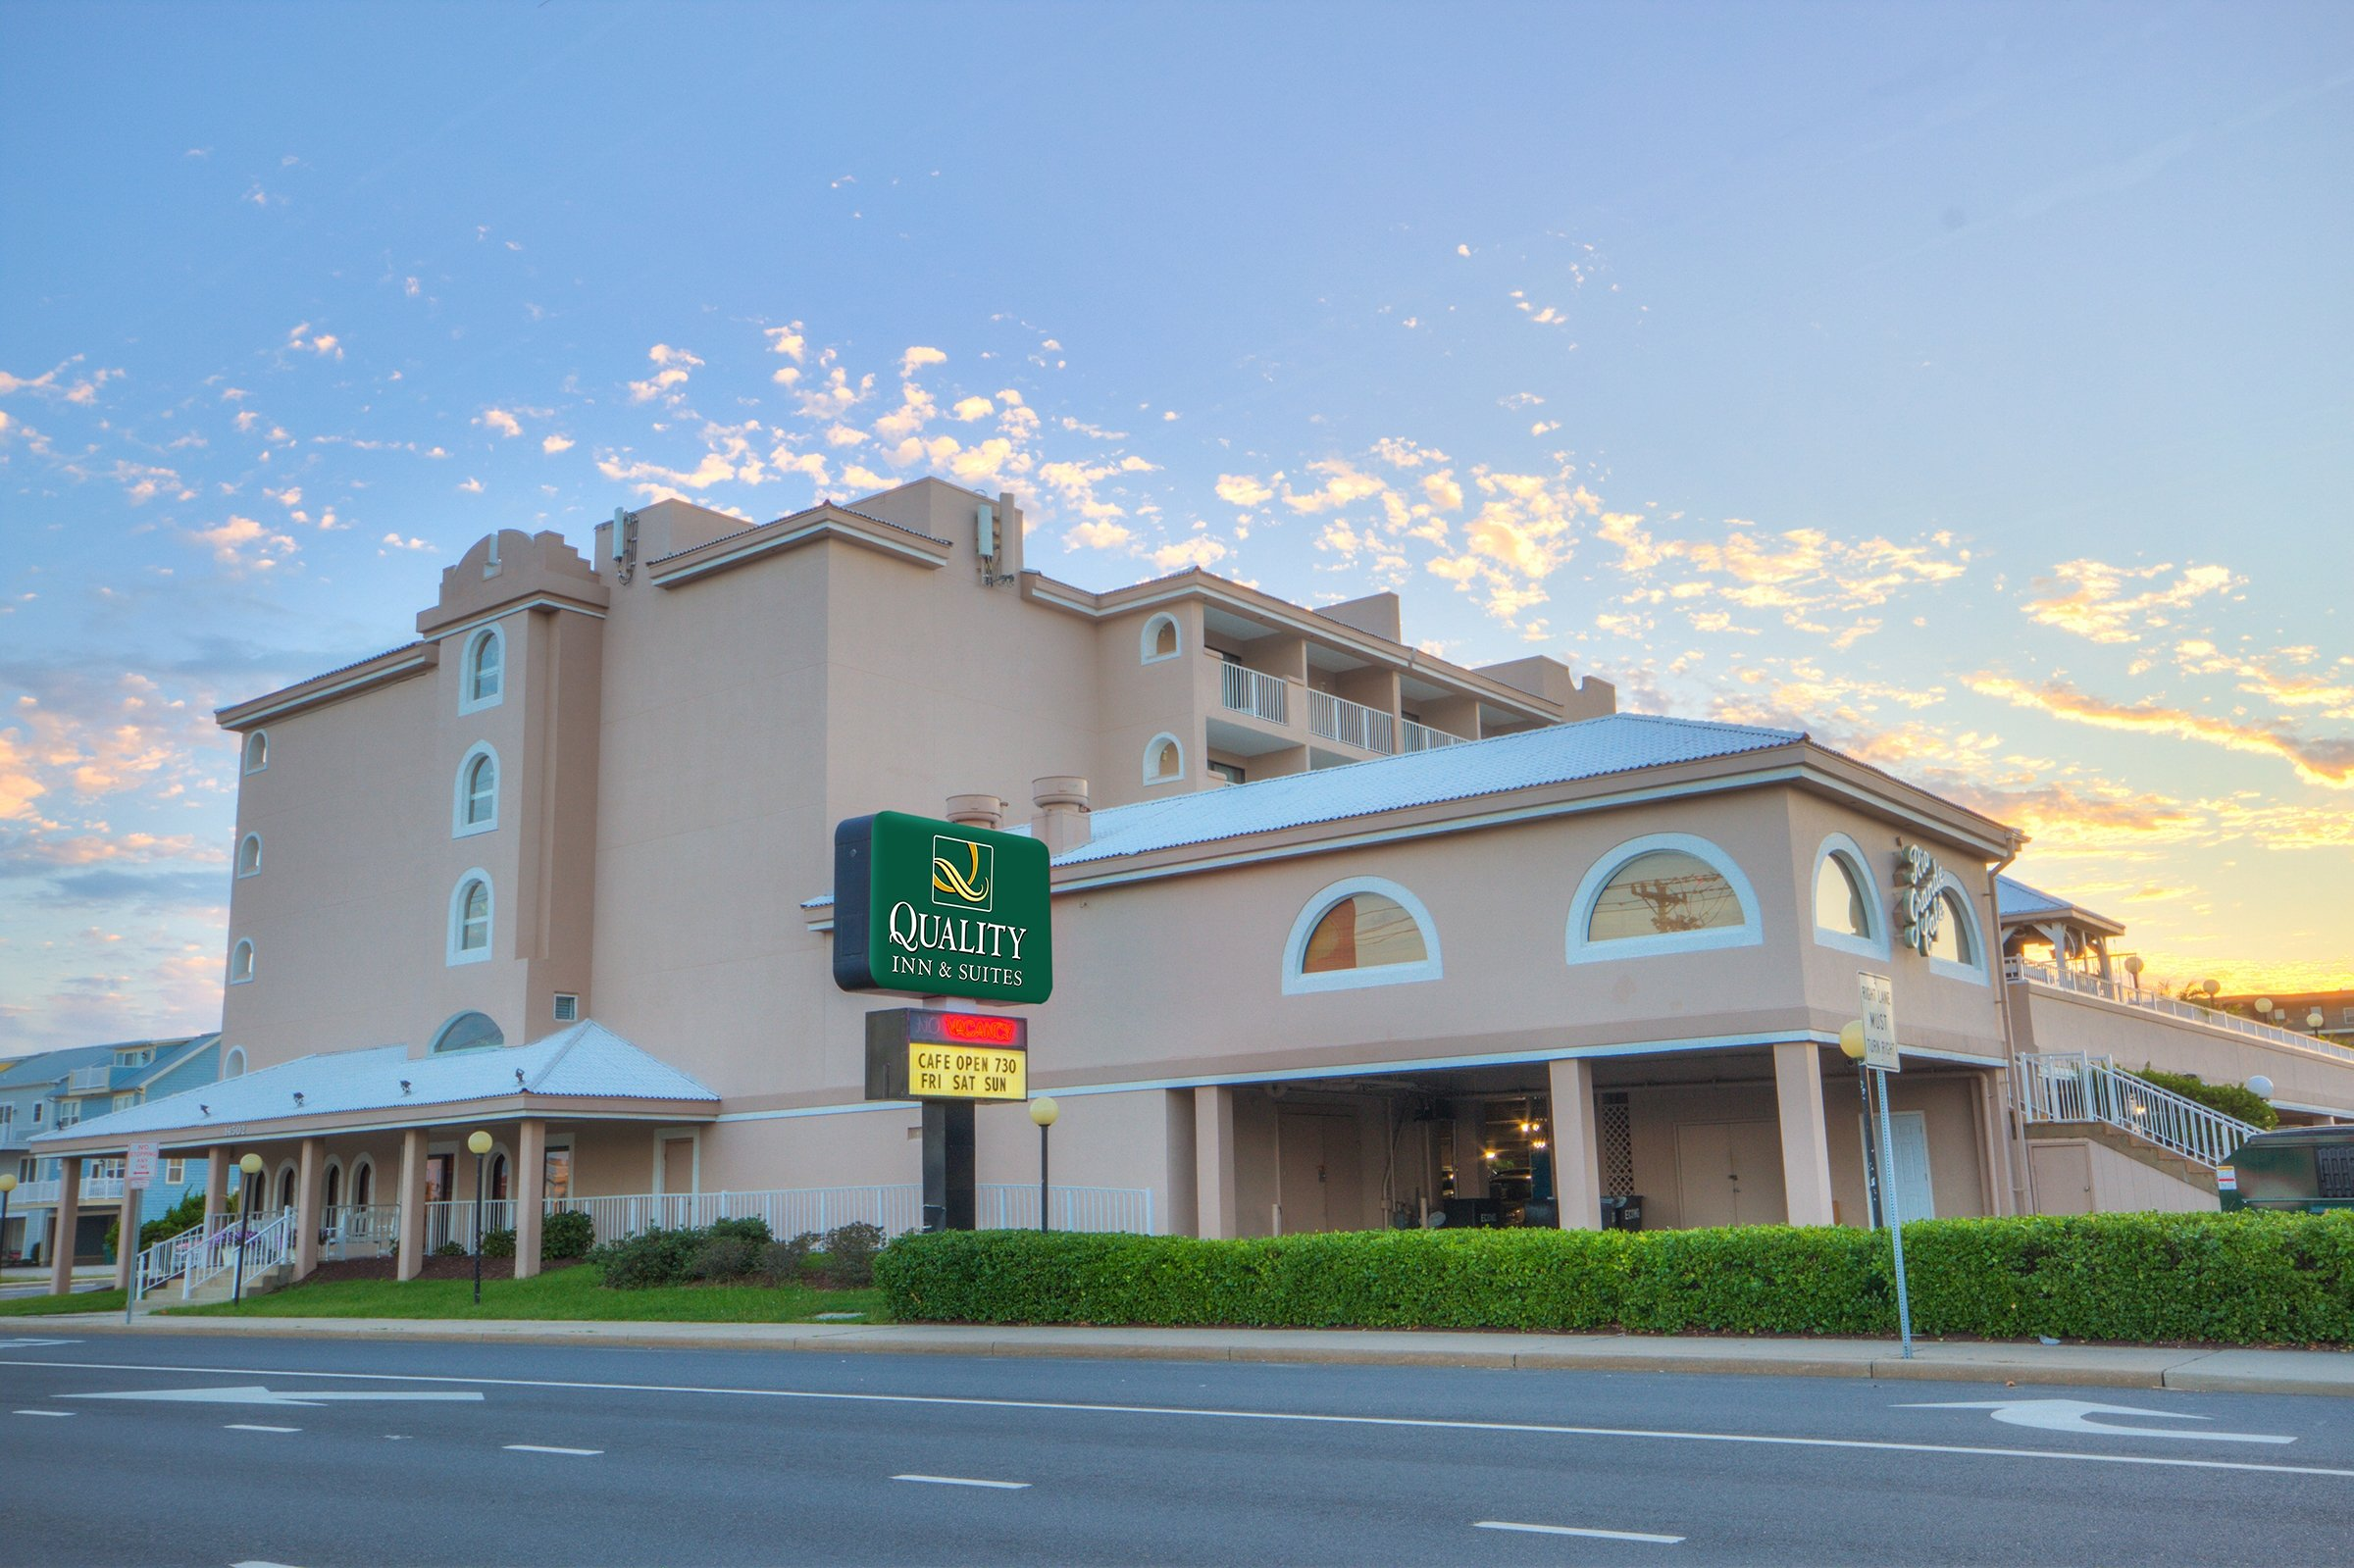 Welcome to the Quality Inn OC North!